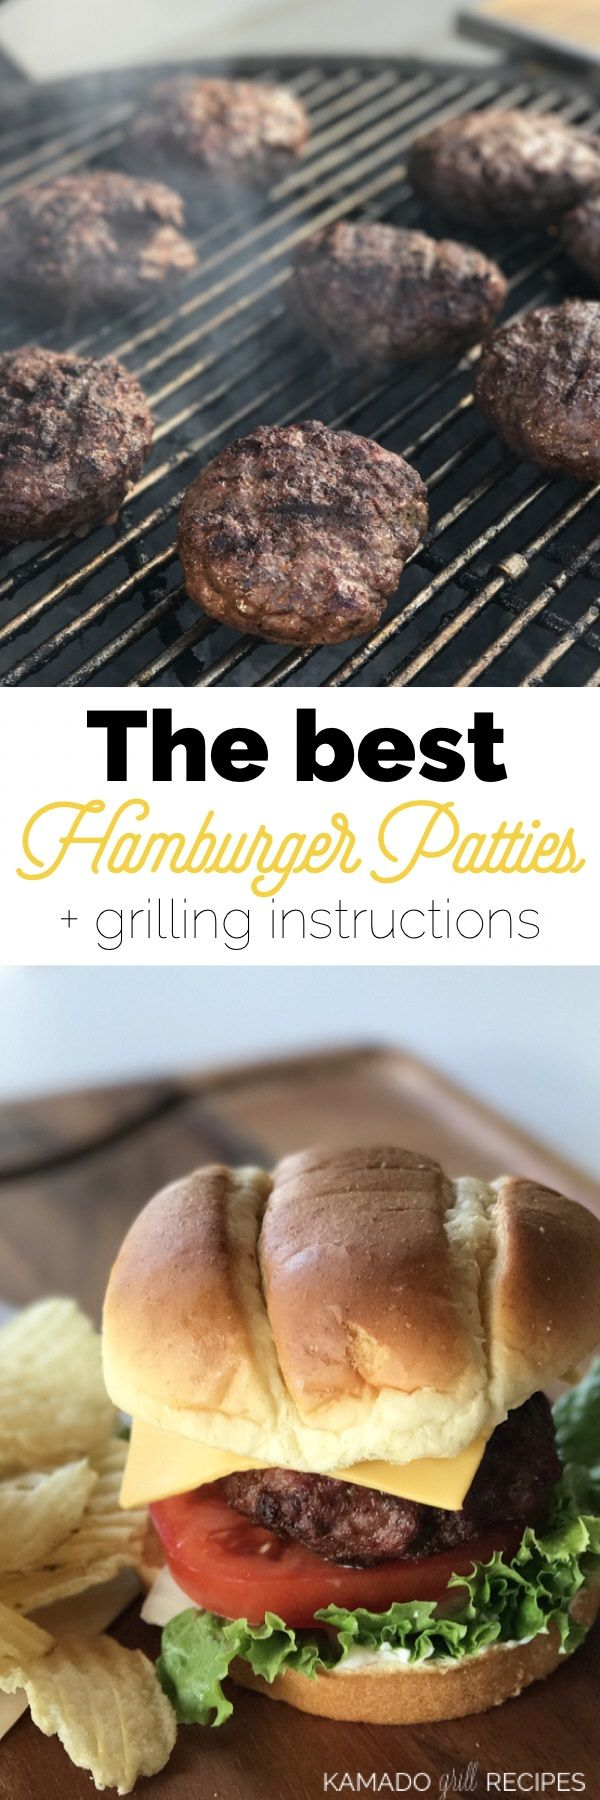 This hamburger recipe for your Kamado grill is easy to make and sooooo good. I can't really take the credit for this hamburger patties recipe though, because I found it awhile back on a blog called Happy Money Saver. Take a few minutes to check out Happy Money Saver as you're grilling these burgers. I...